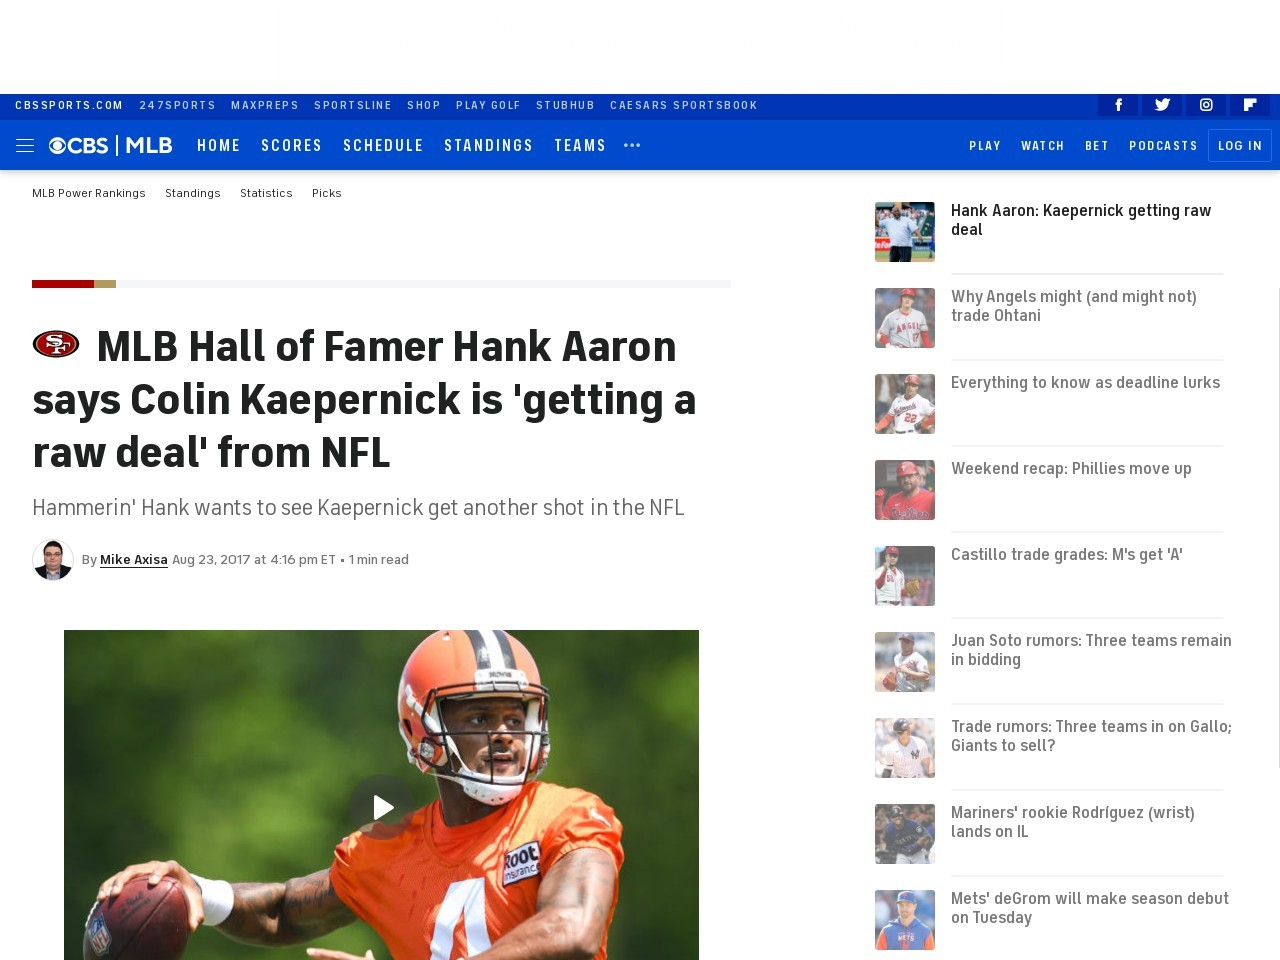 MLB Hall of Famer Hank Aaron says Colin Kaepernick is 'getting a raw deal' from NFL